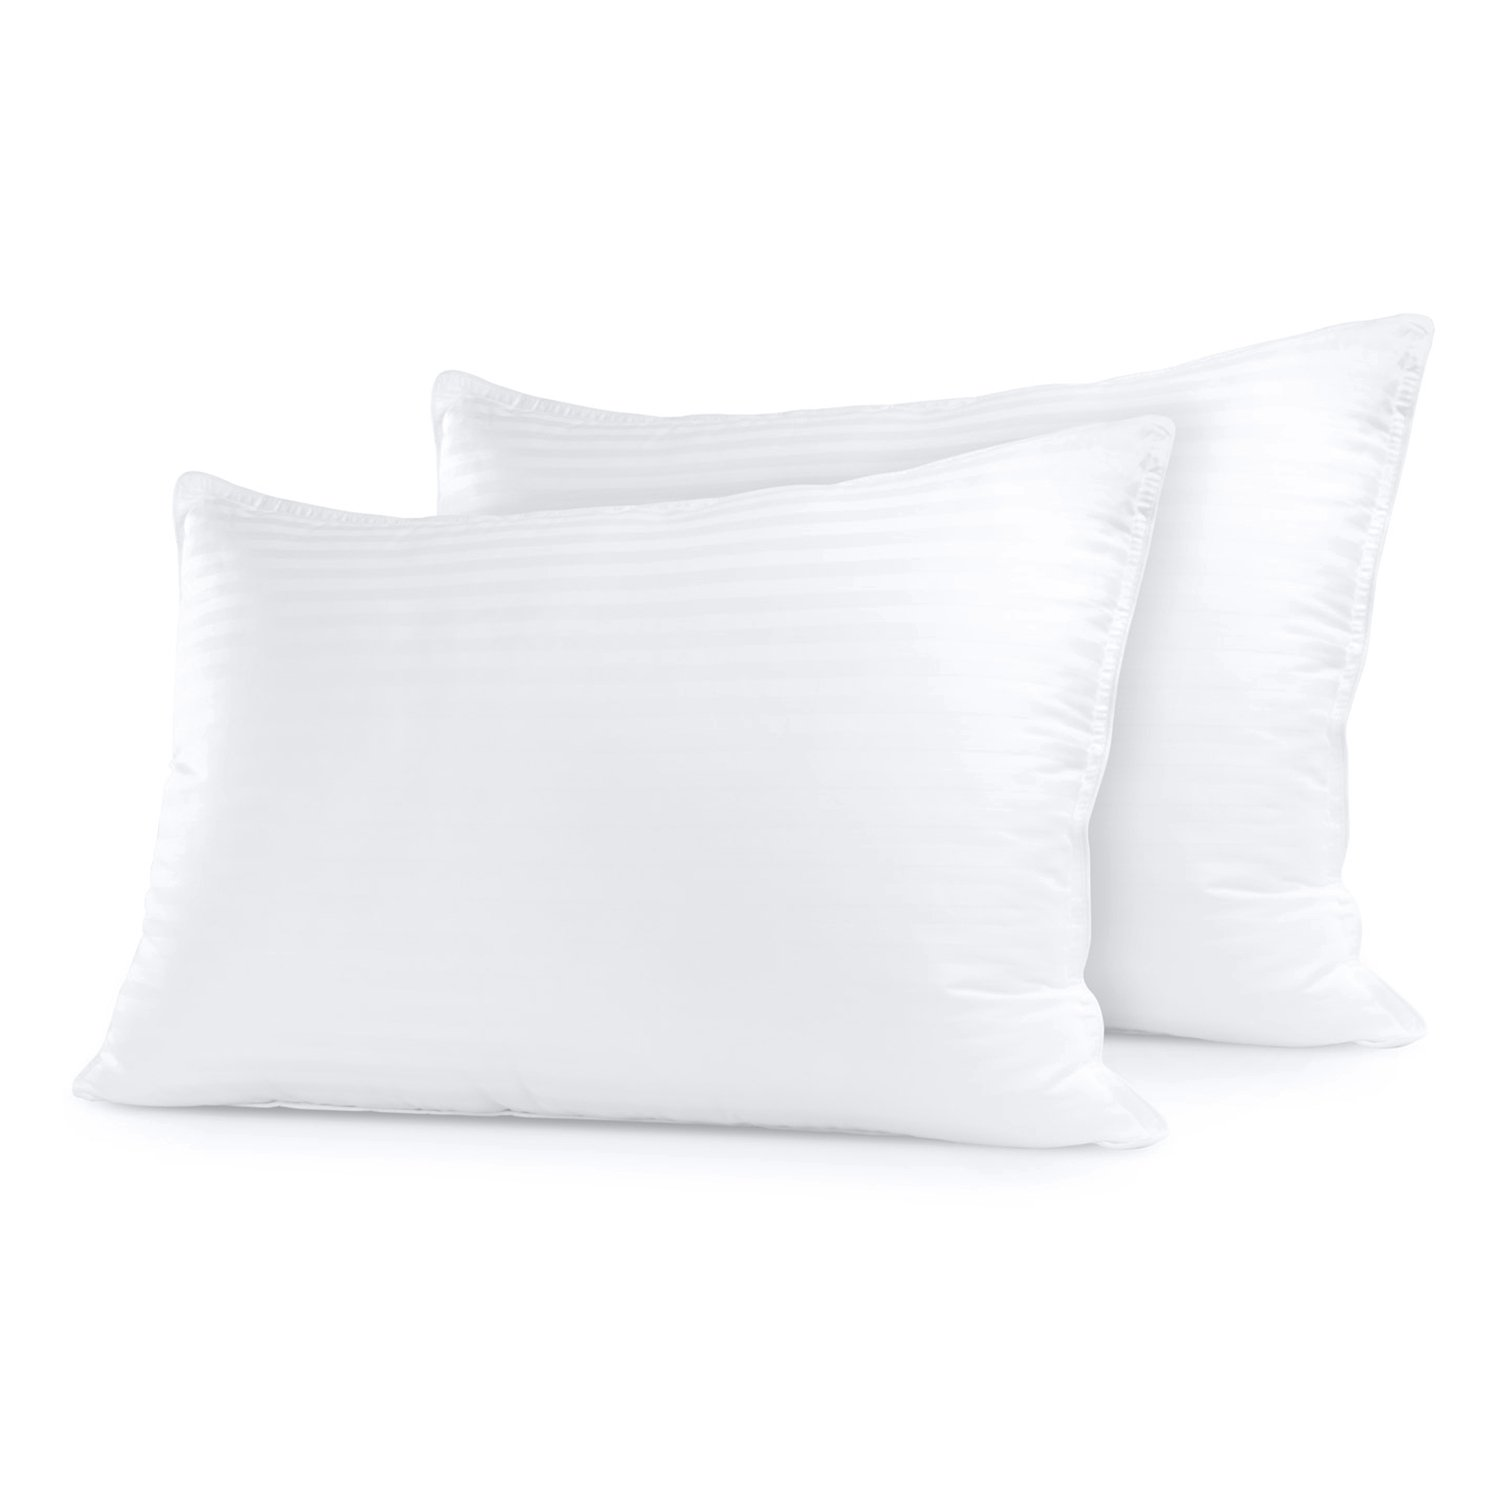 Looking For The Best Cooling Pillow? Discover What It Is Here!